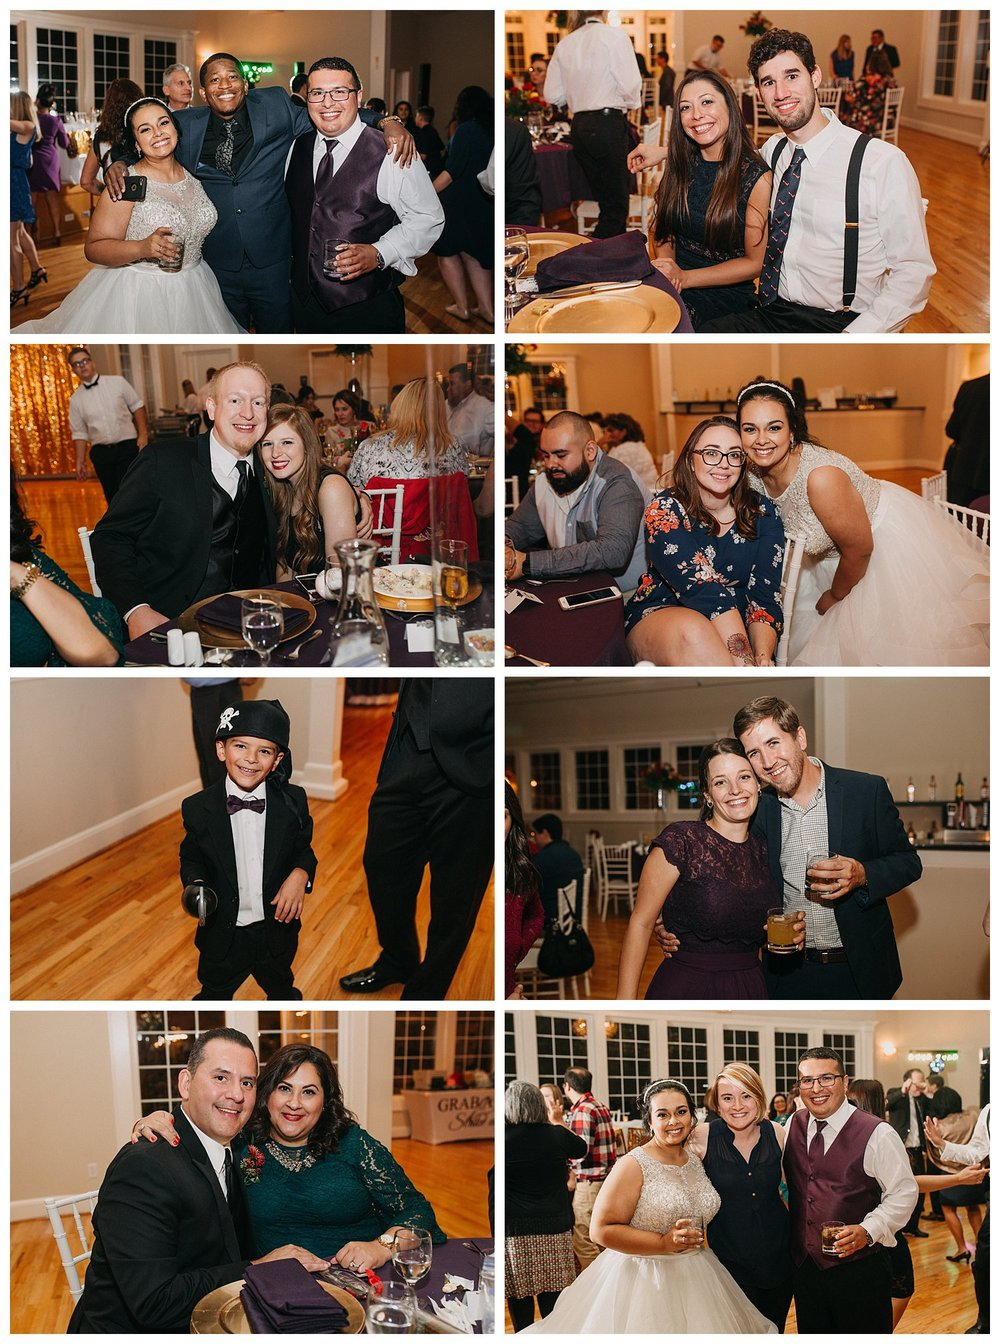 Kelsey_Diane_Photography_Hawthorne_House_Parkville_Kansas_City_Wedding_Veronica_Pat_0072.jpg